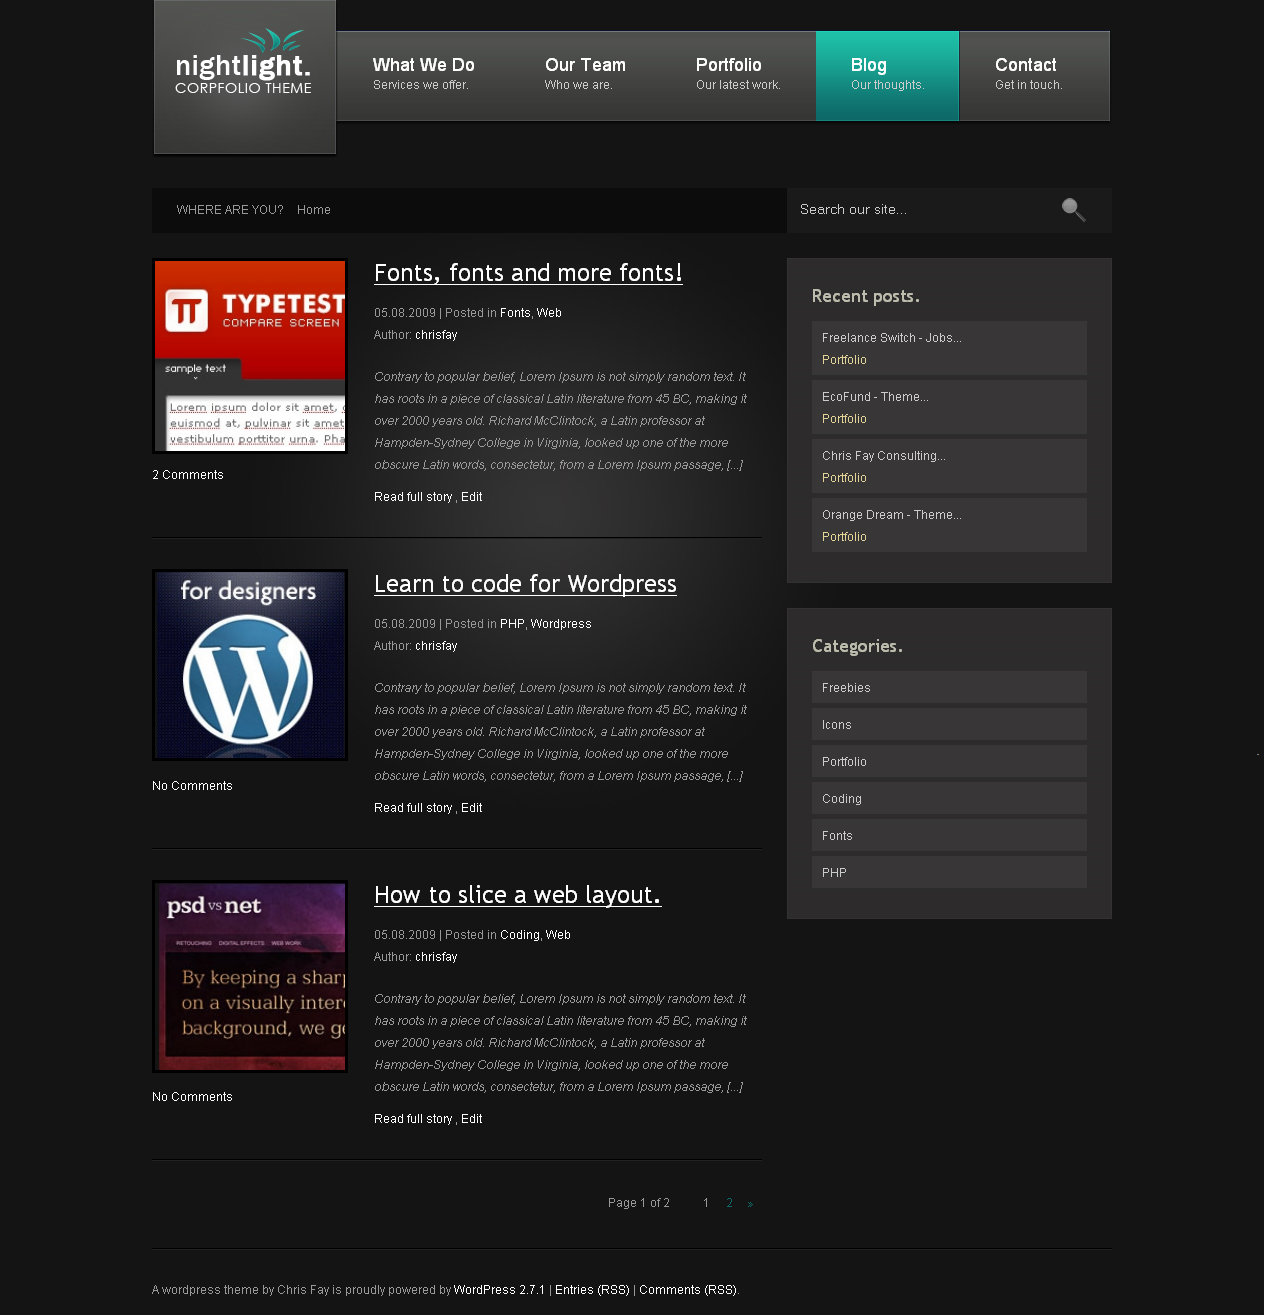 nightLight - Wordpress Theme - Blog Page